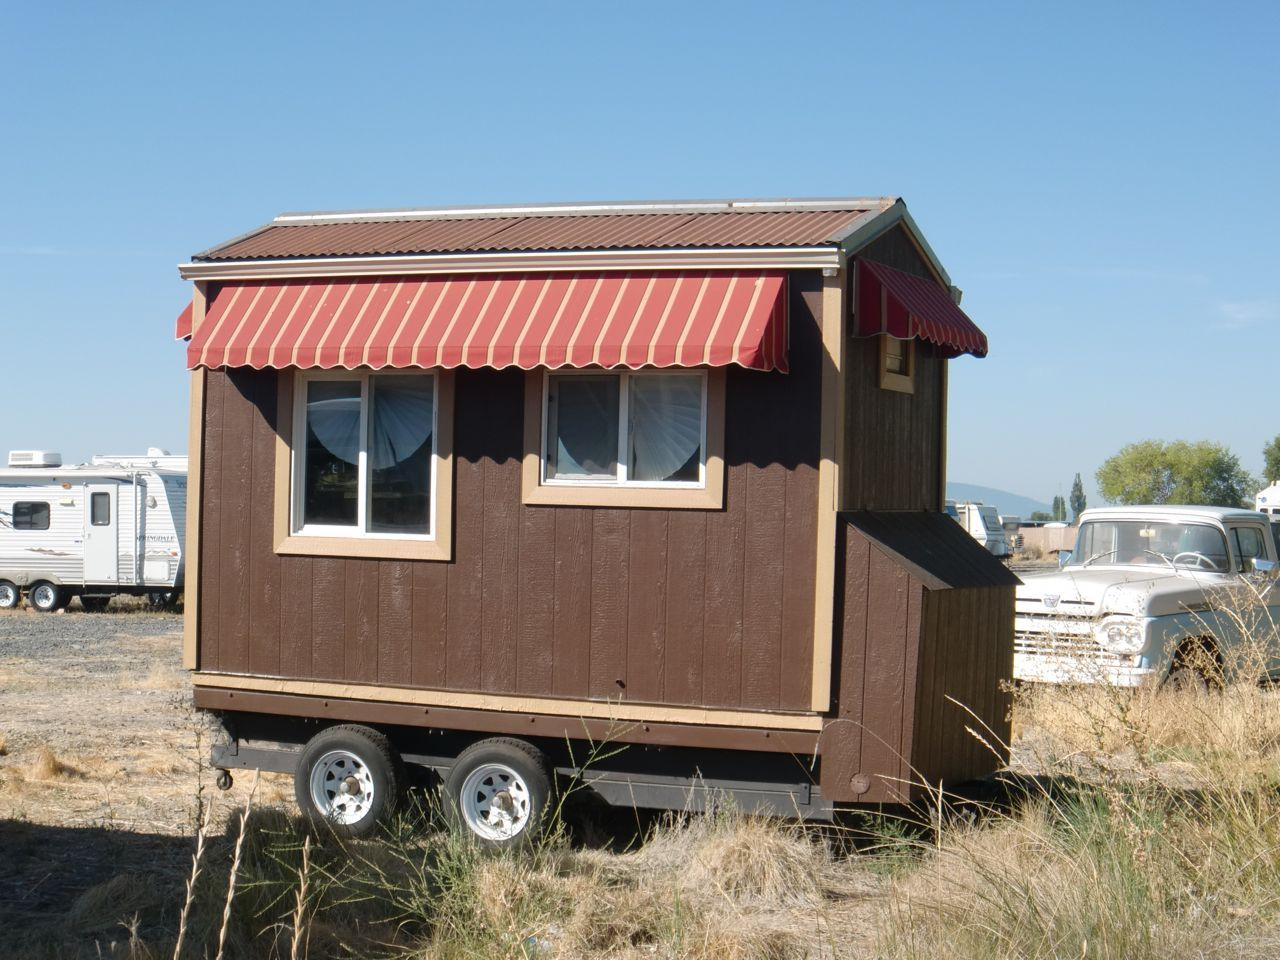 Tiny houses on trailers for sale - Can A Concession Trailer Be Turned Into A Tiny House Concession Trailers Are Created Specifically